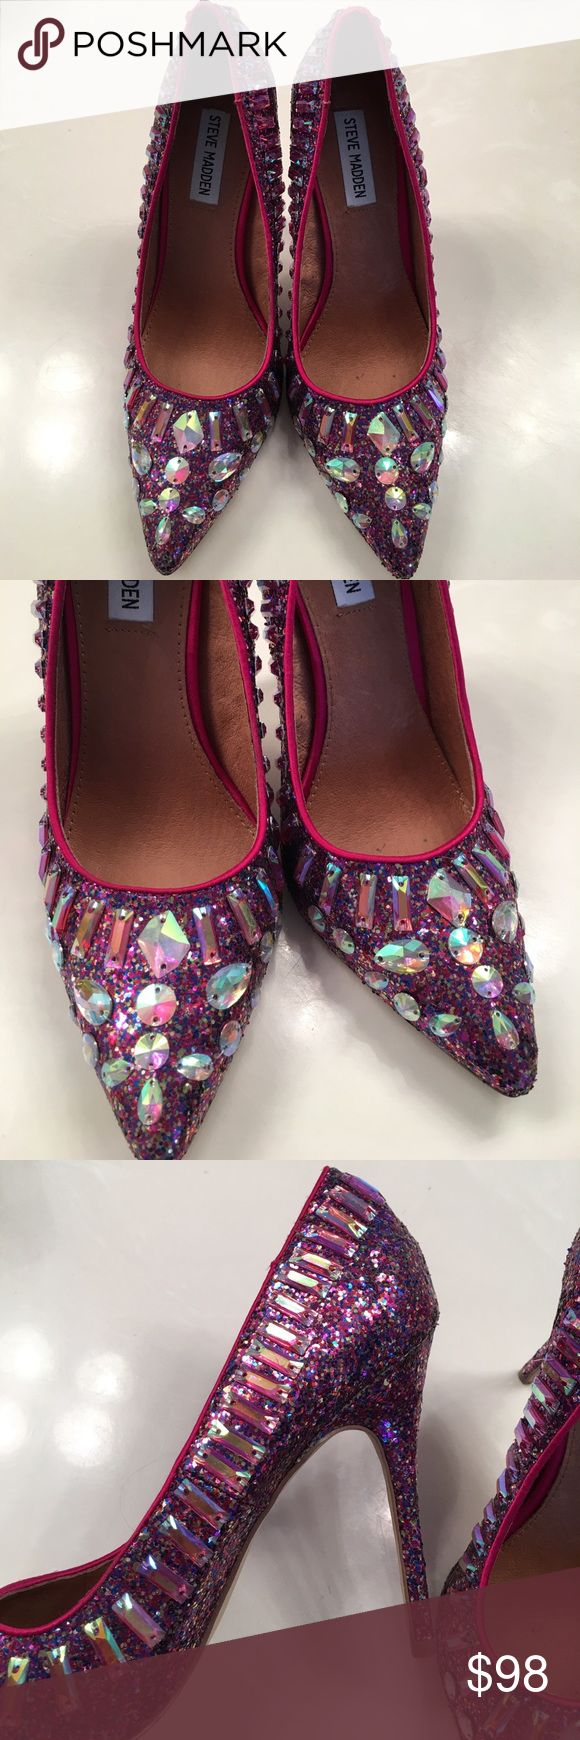 """NWT ✨ Steve Madden - """"Galaxxie"""" Glitter Heels Brand New, still has tags on the bottoms. Just tried on at the store and never worn. Even more stunning in person! These Steve Madden glittery Rhinestone heels are everything 🙌🏼💕😍. So beautiful. Price is definitely negotiable and I'm always open to all offers. 💕Size 8.5 💕 Steve Madden Shoes"""